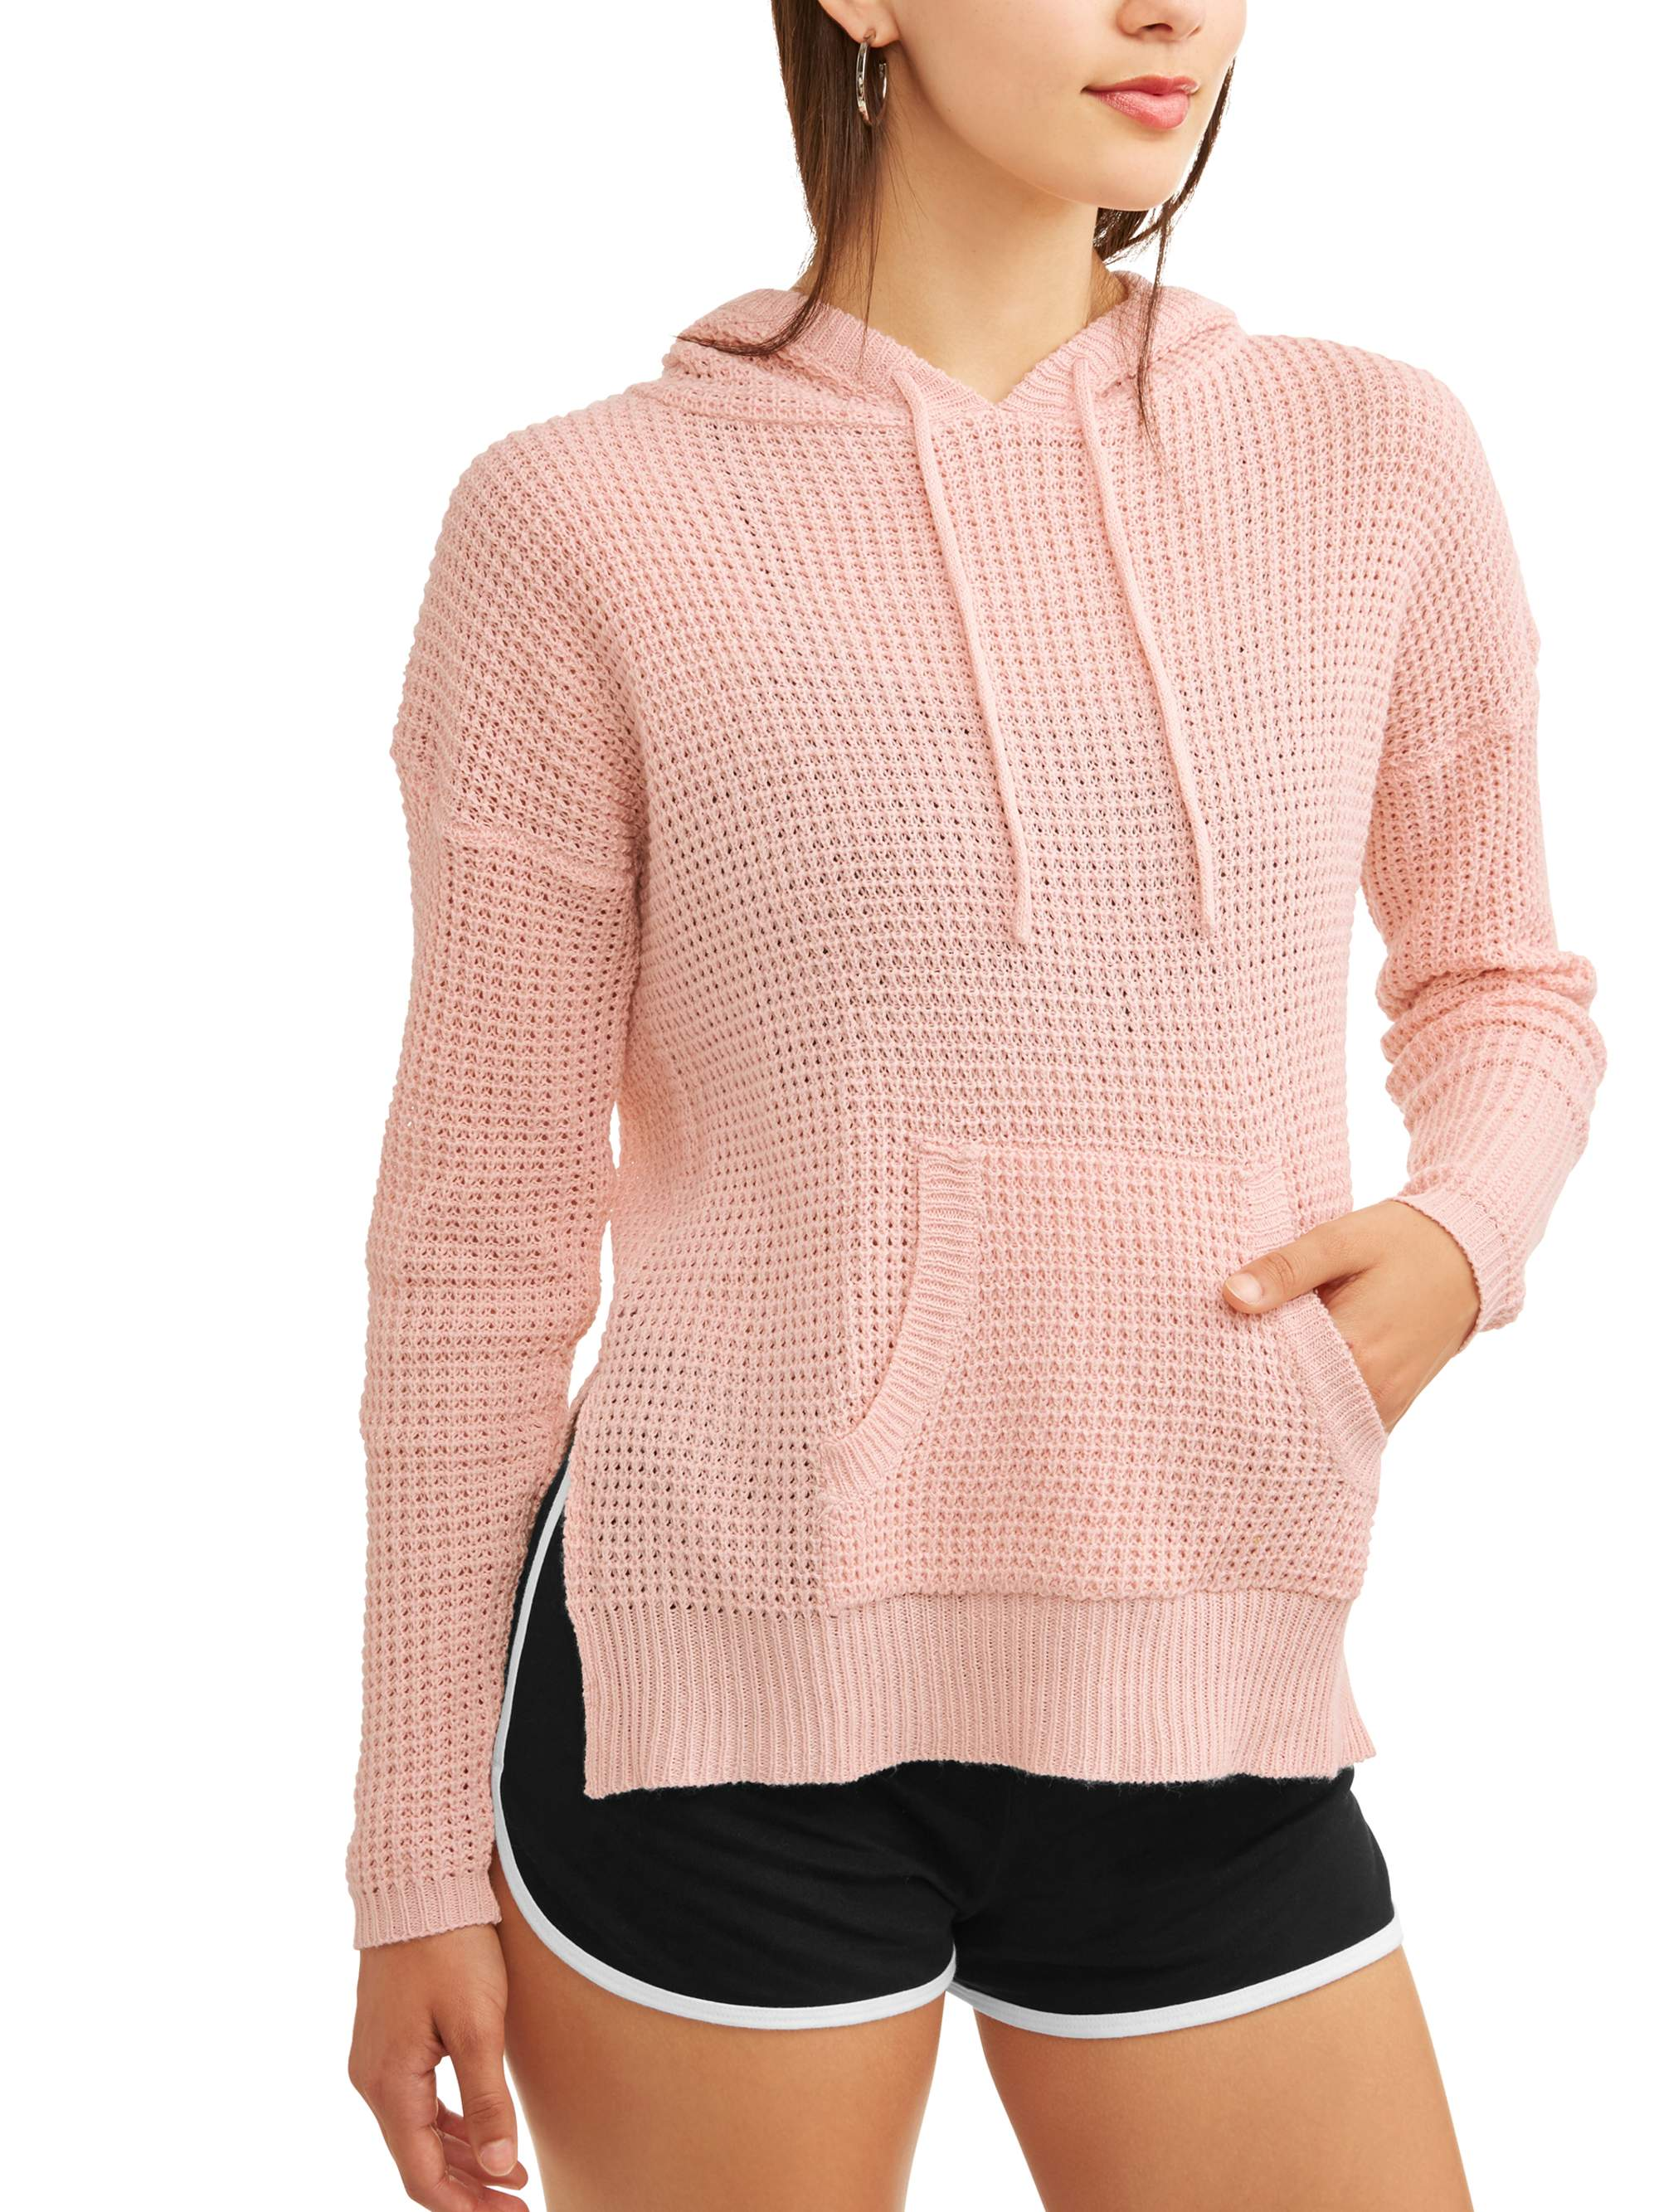 Women\'s Clothing - Walmart.com